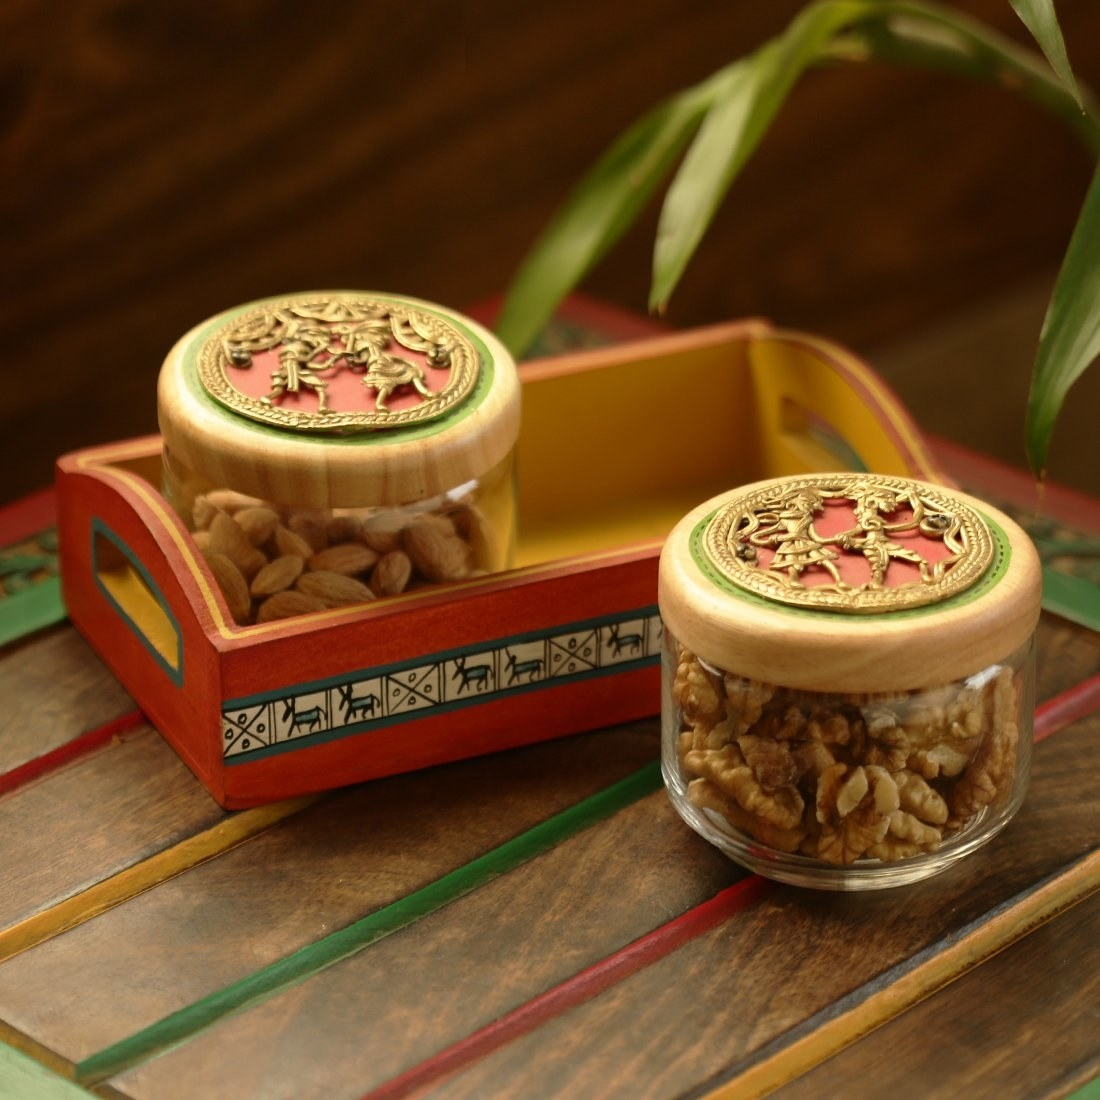 A pair of Dhokra art jars with walnuts and almonds in them. One of them is kept in a wooden tray and the other is kept tray near the tray.